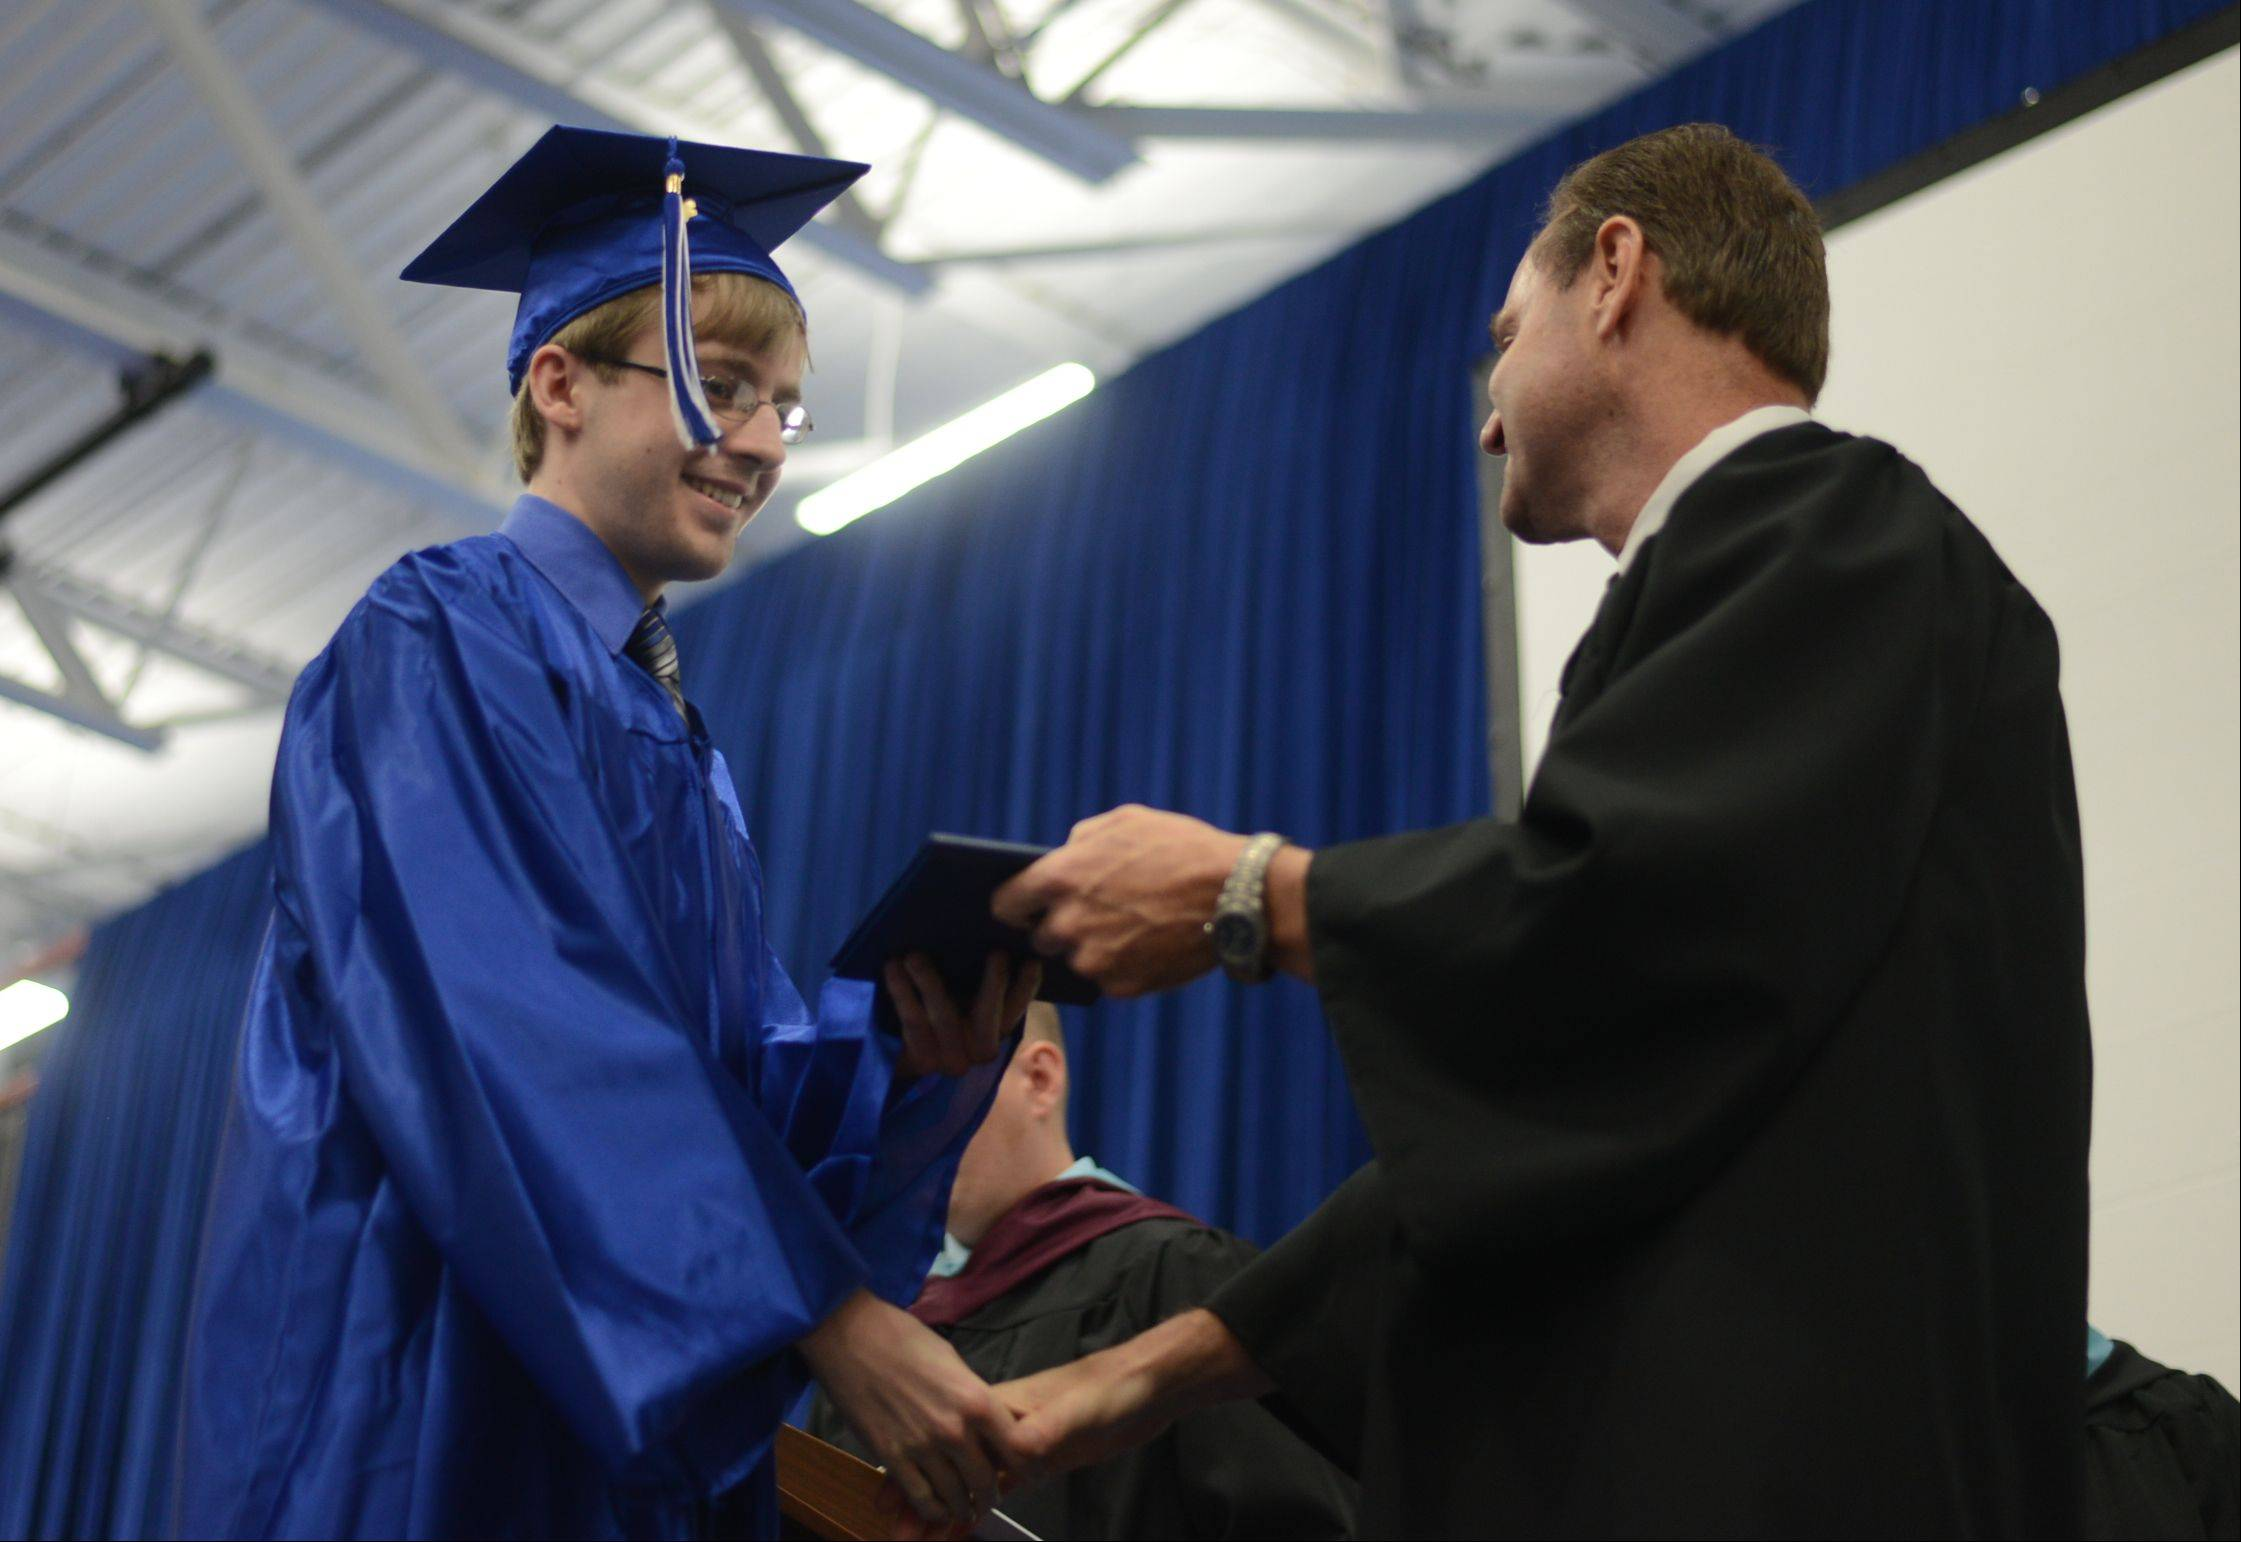 Images from the Burlington Central High School graduation ceremony Friday, May 31 at Elgin Community College in Elgin.